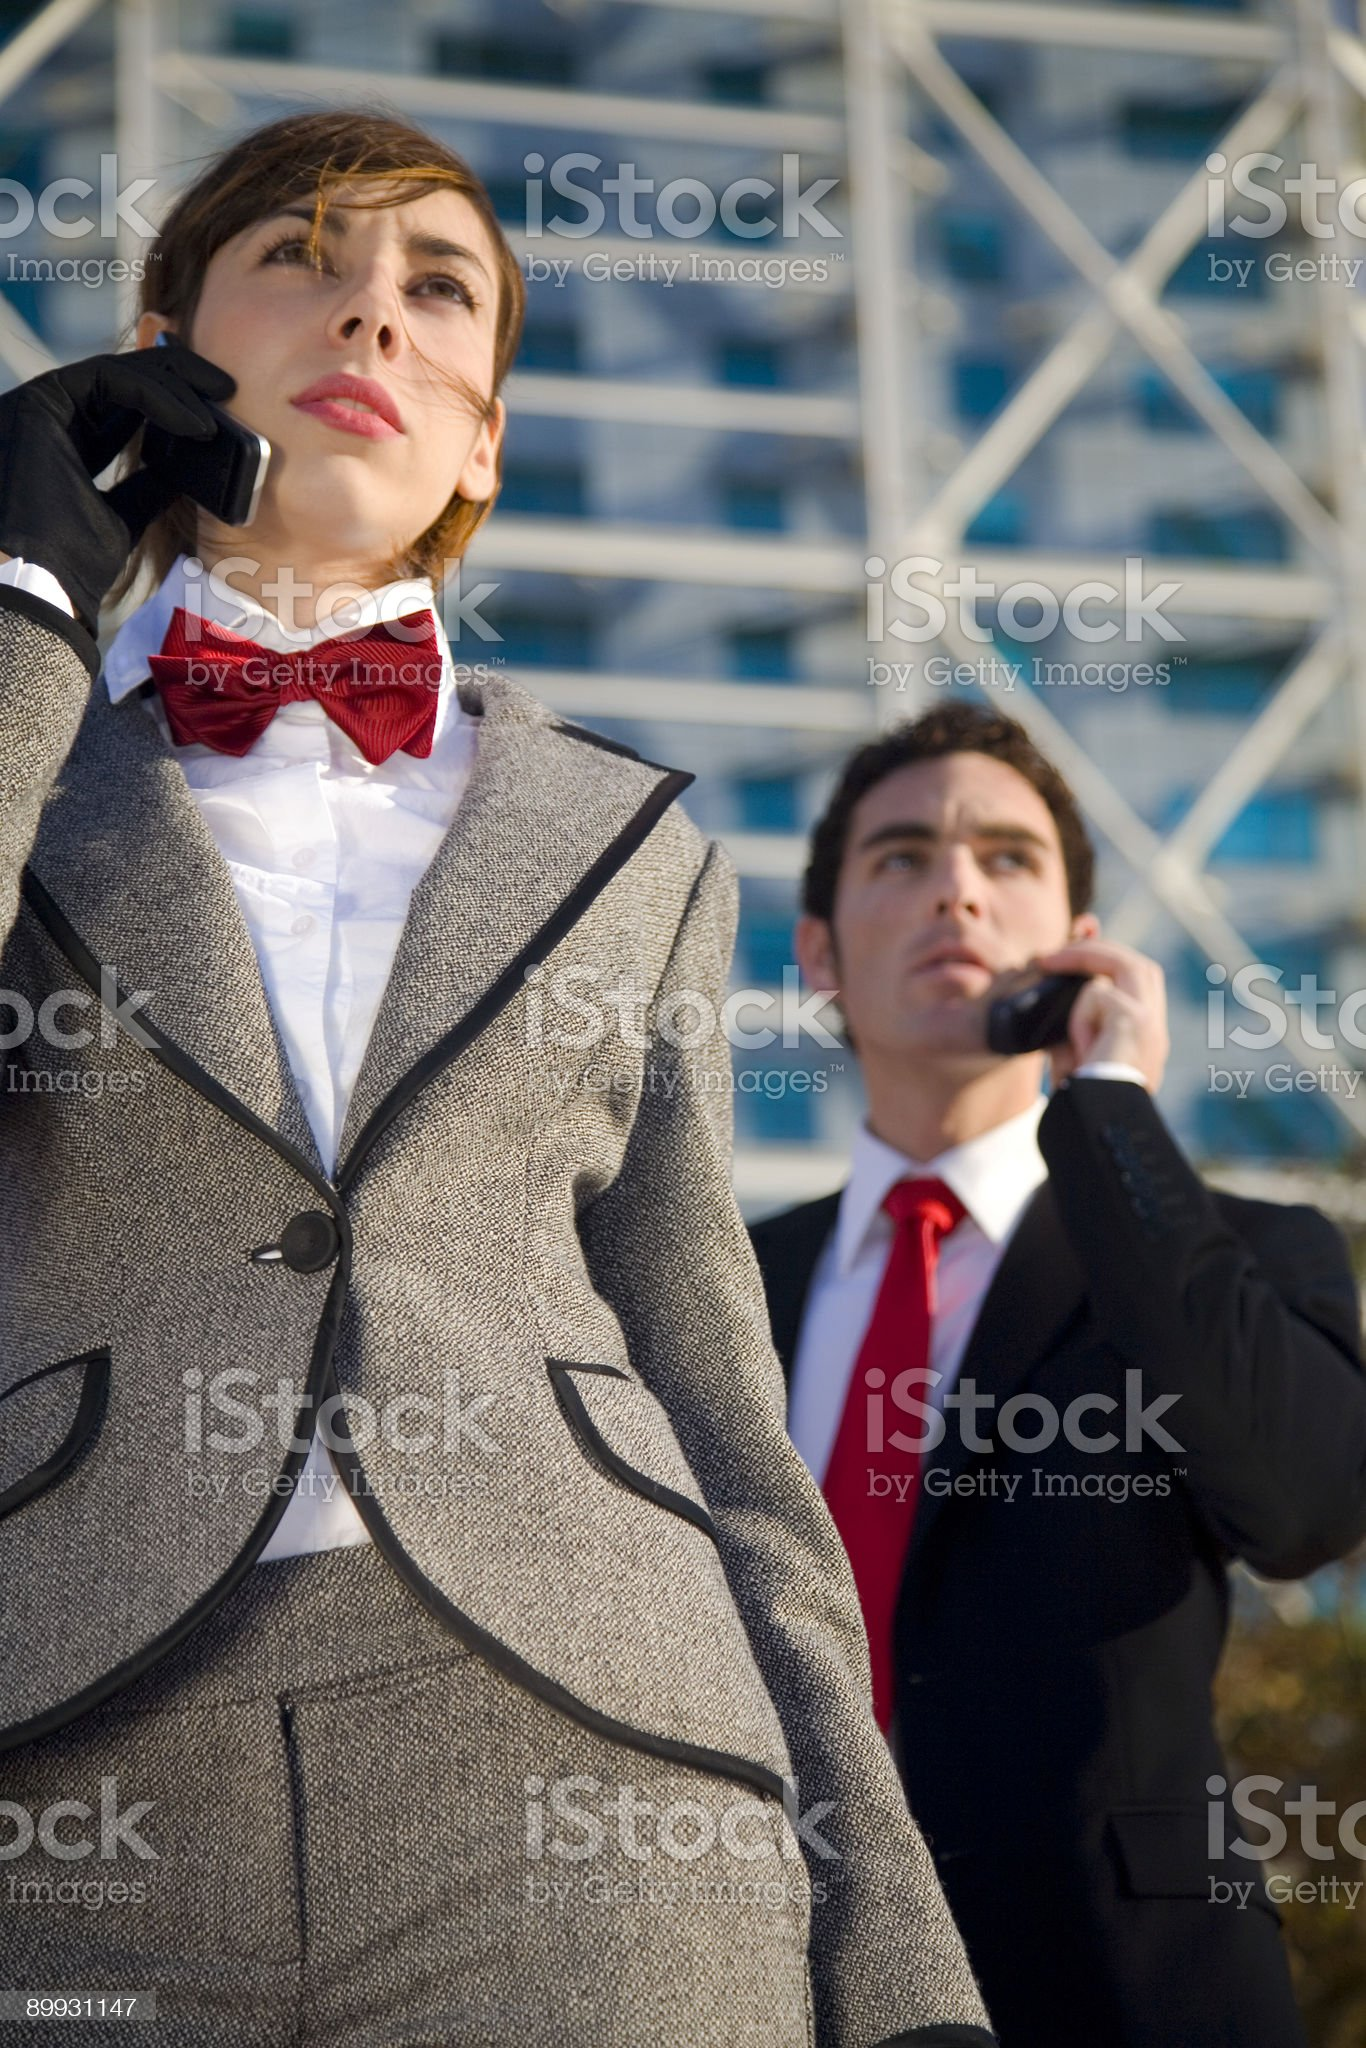 Business people with cell phones royalty-free stock photo